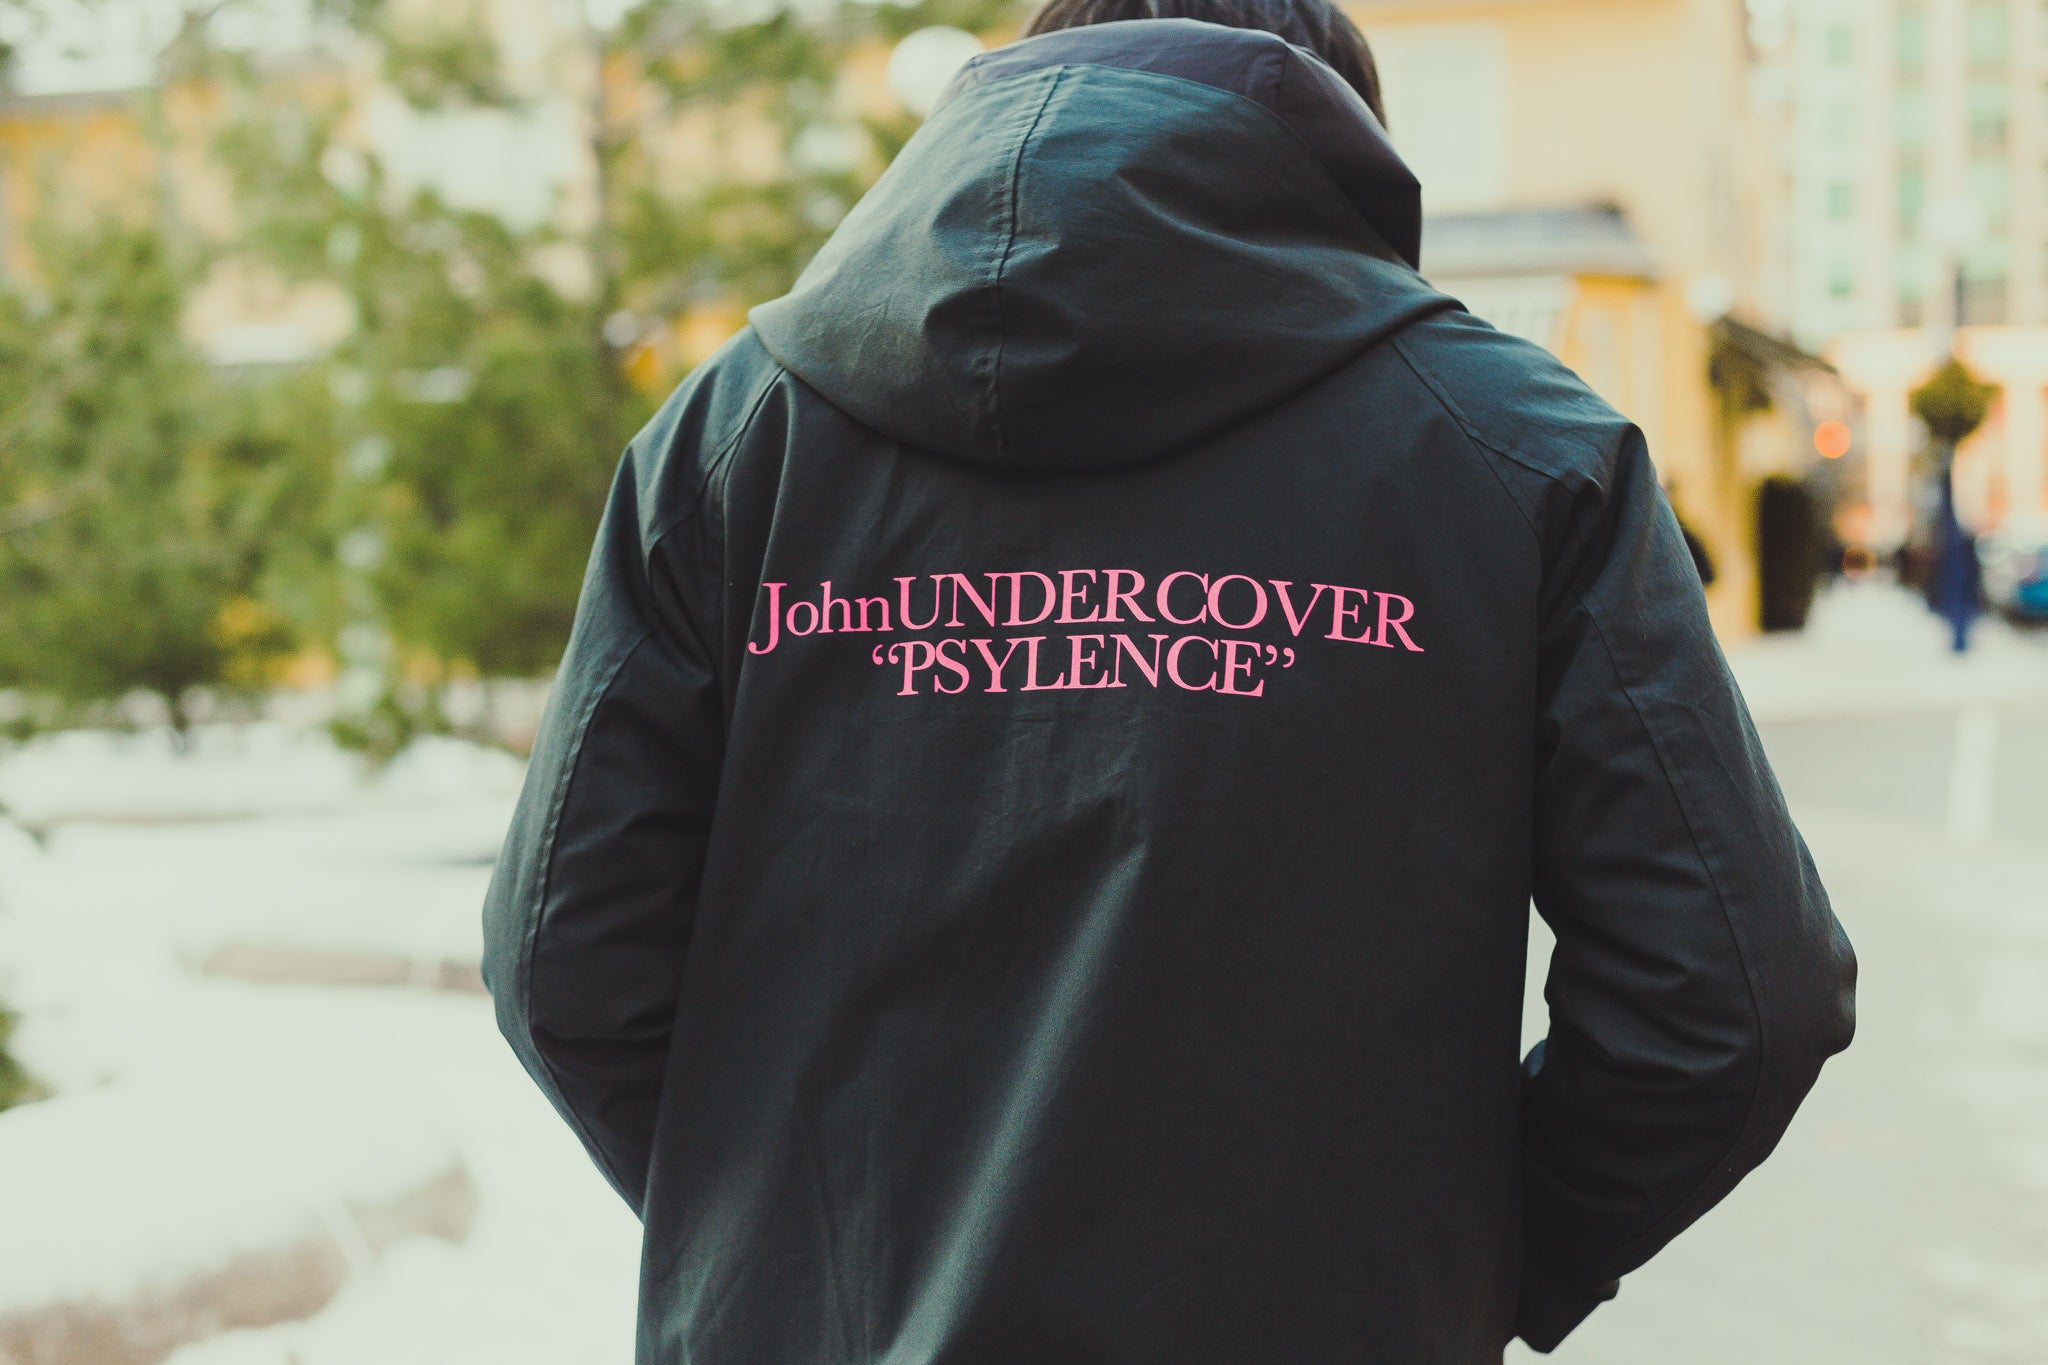 JohnUNDERCOVER SS18 Collection